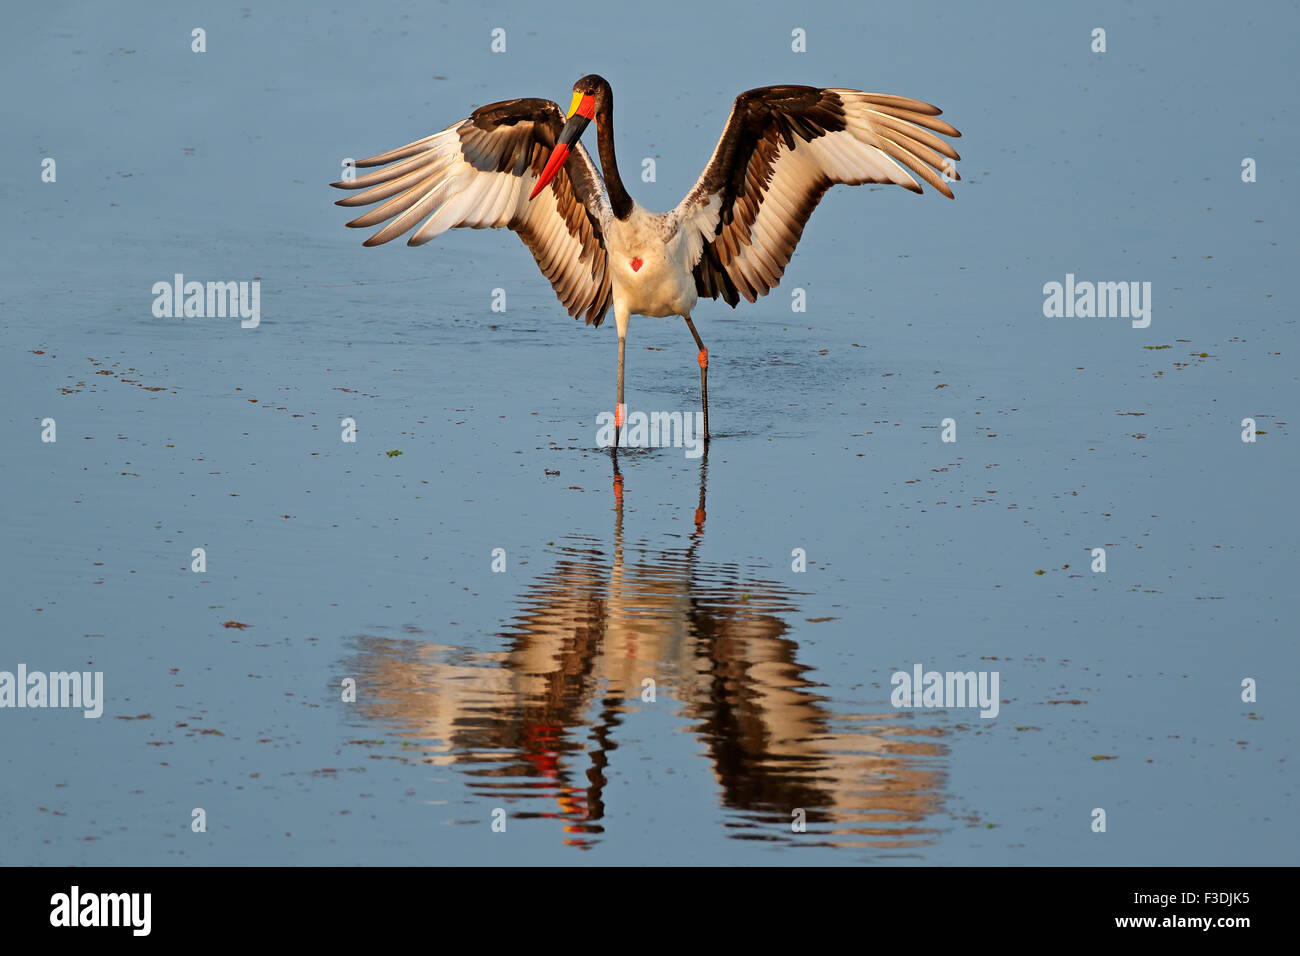 Sadle-billed stork (Ephippiorhynchus senegalensis), Kruger National Park, South Africa - Stock Image